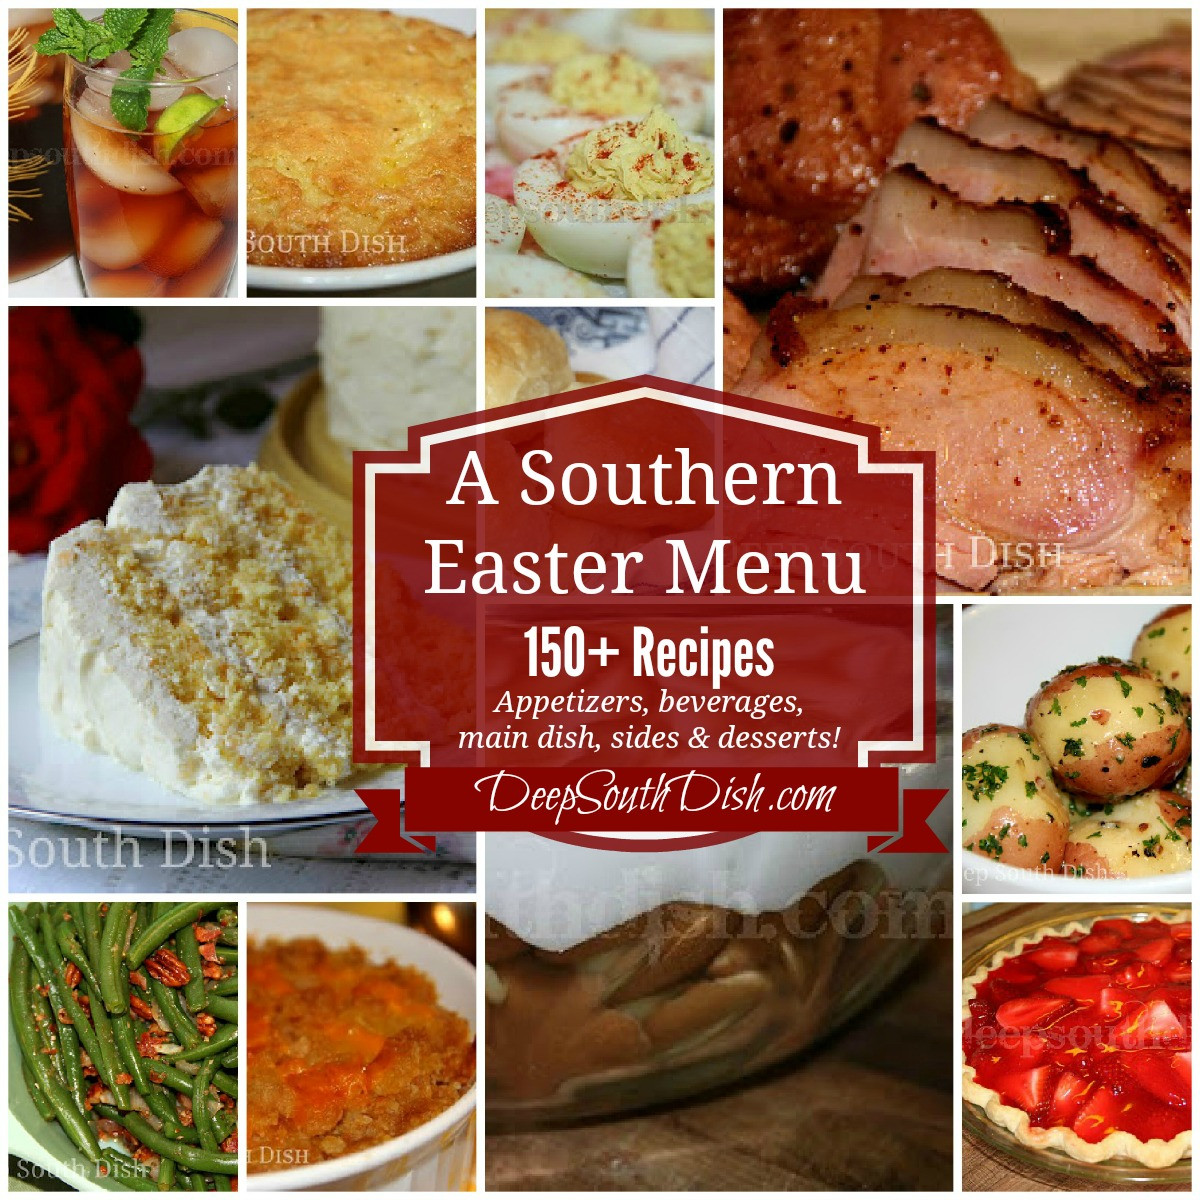 Best Easter Dinner Menu Ideas  Deep South Dish Southern Easter Menu Ideas and Recipes